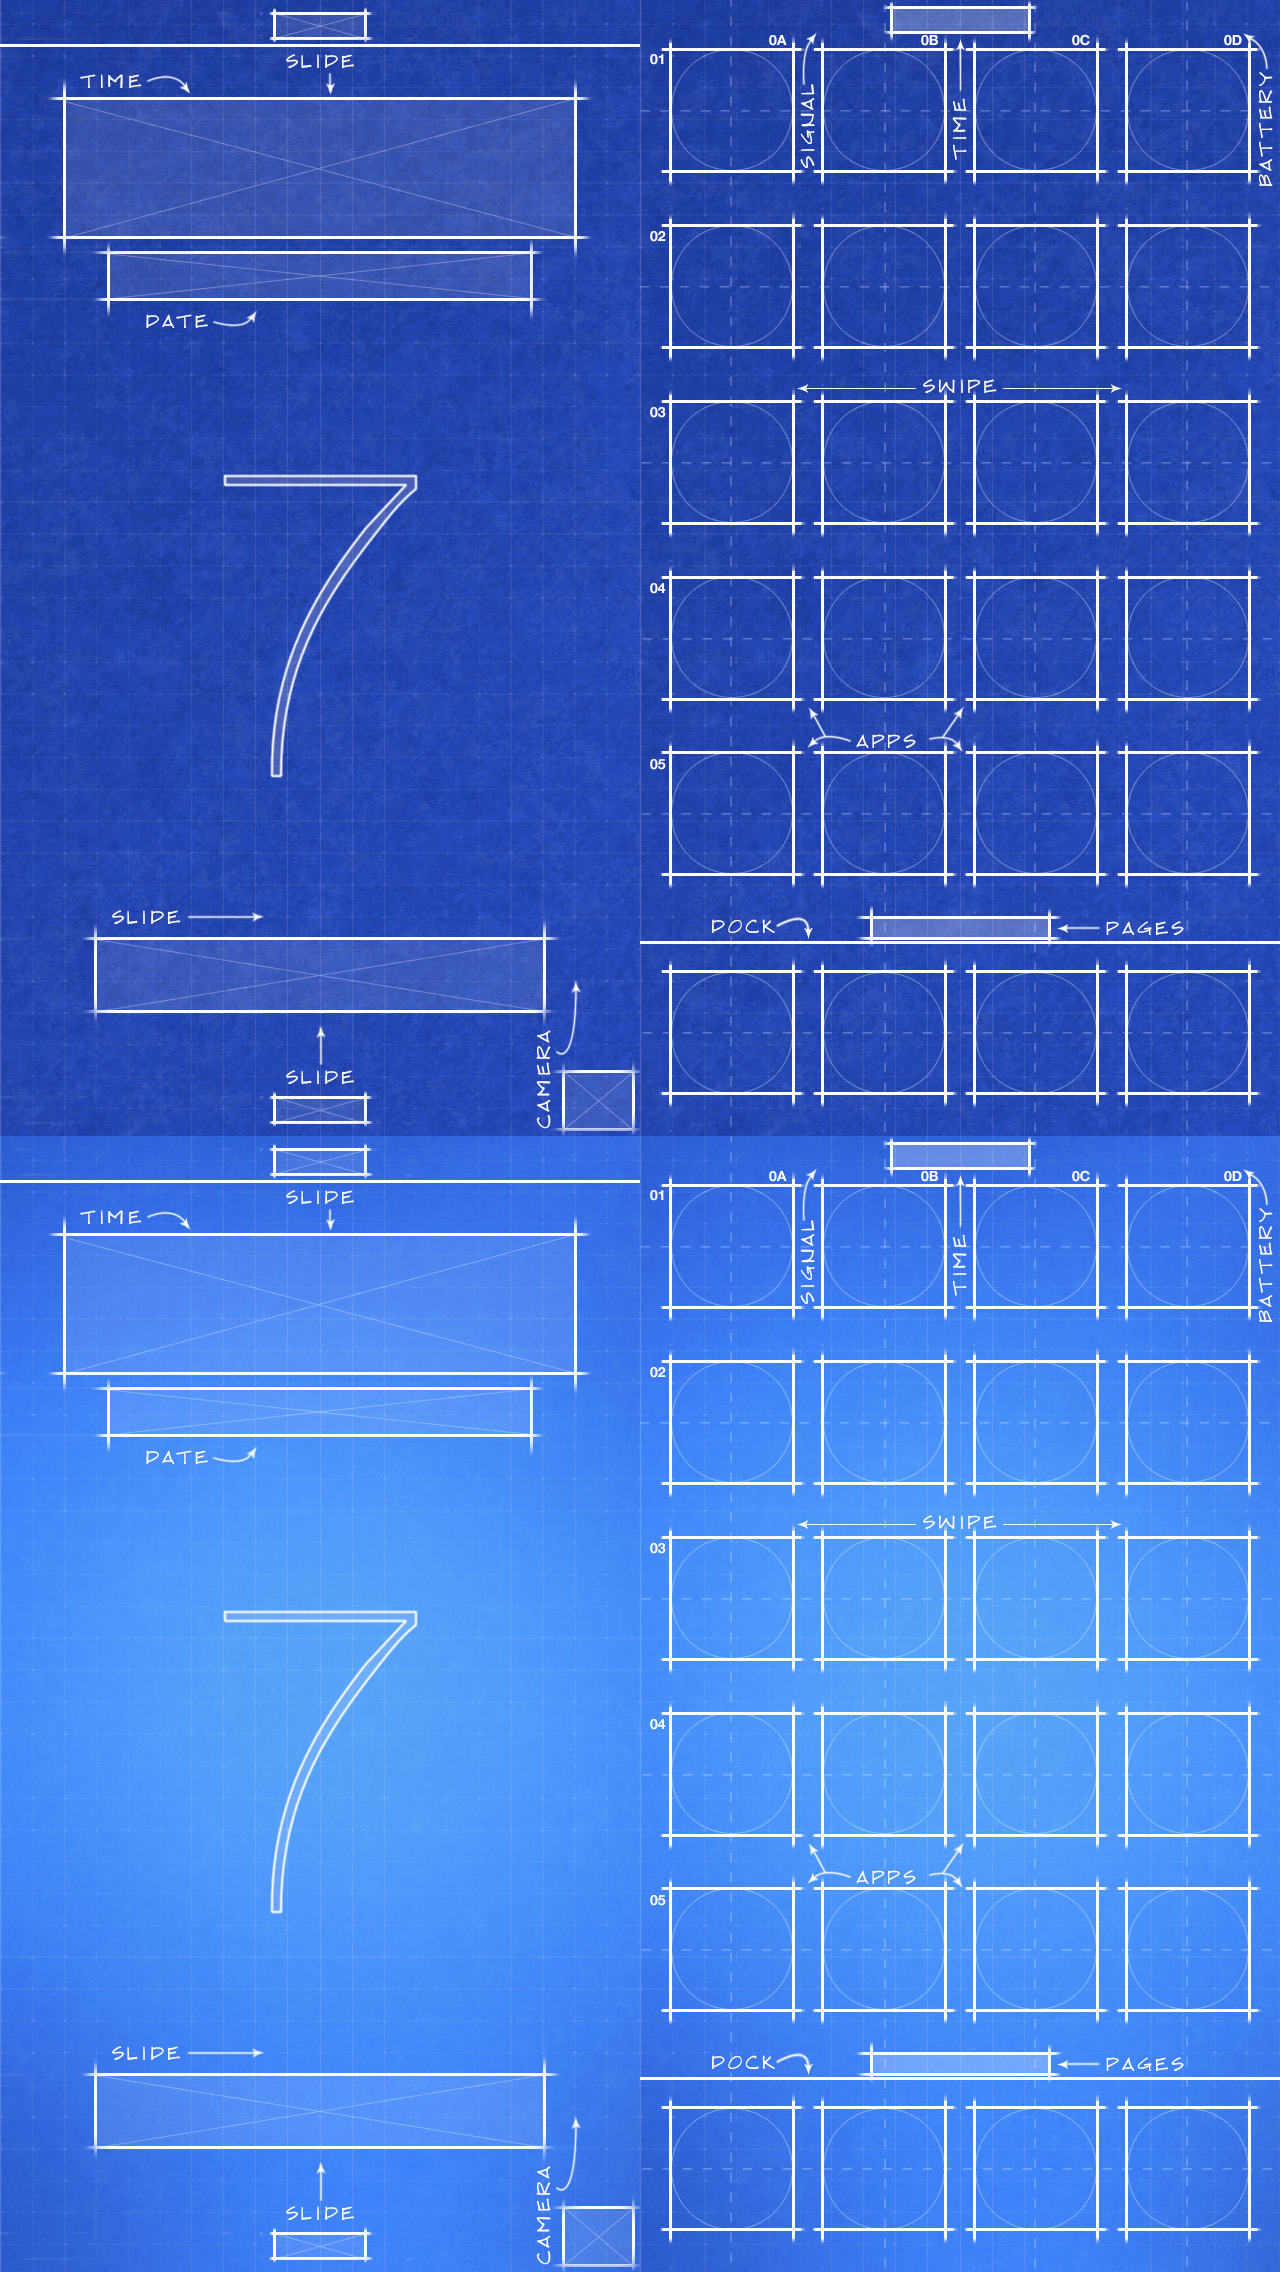 Iphone 45 ios 7 blueprint wallpaper updated by jessemunoz on deviantart iphone 45 ios 7 blueprint wallpaper updated by jessemunoz malvernweather Choice Image